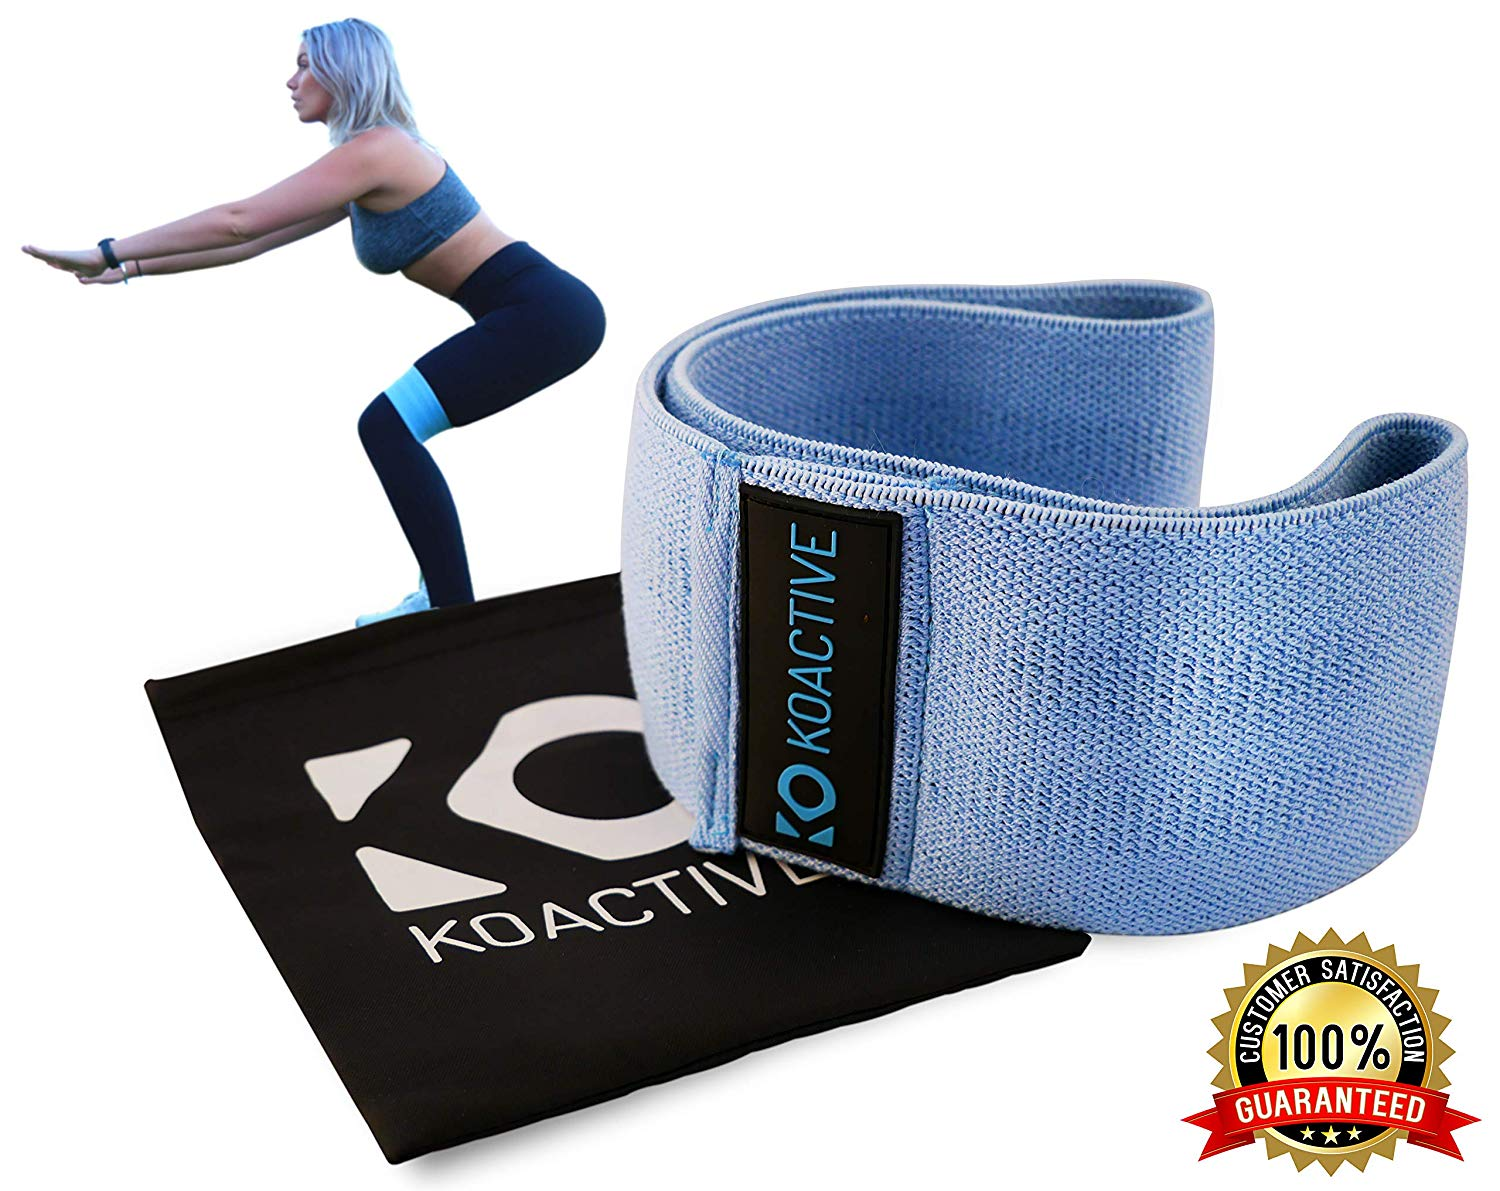 koactive Resistance Hip Band Circle – Premium Non-Slip & Soft High Level Resistance Band – Compact Bootie Shaping Workout Flexor – Full Dynamic Exercise Strengthening Stripe with Free Black Carry Bag